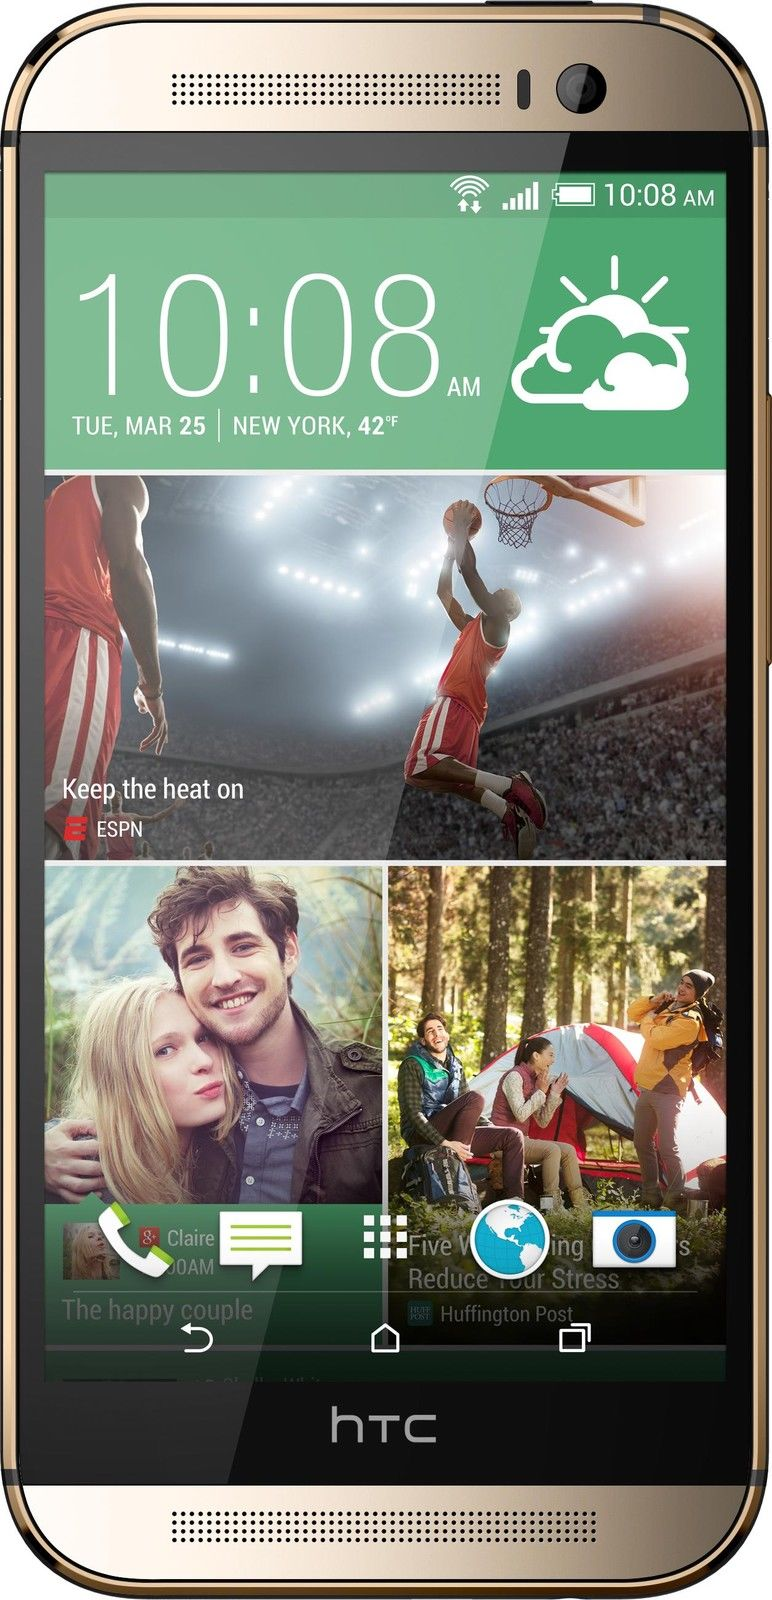 HTC One M8 - 32GB - Amber Gold (AT&T) Smartphone